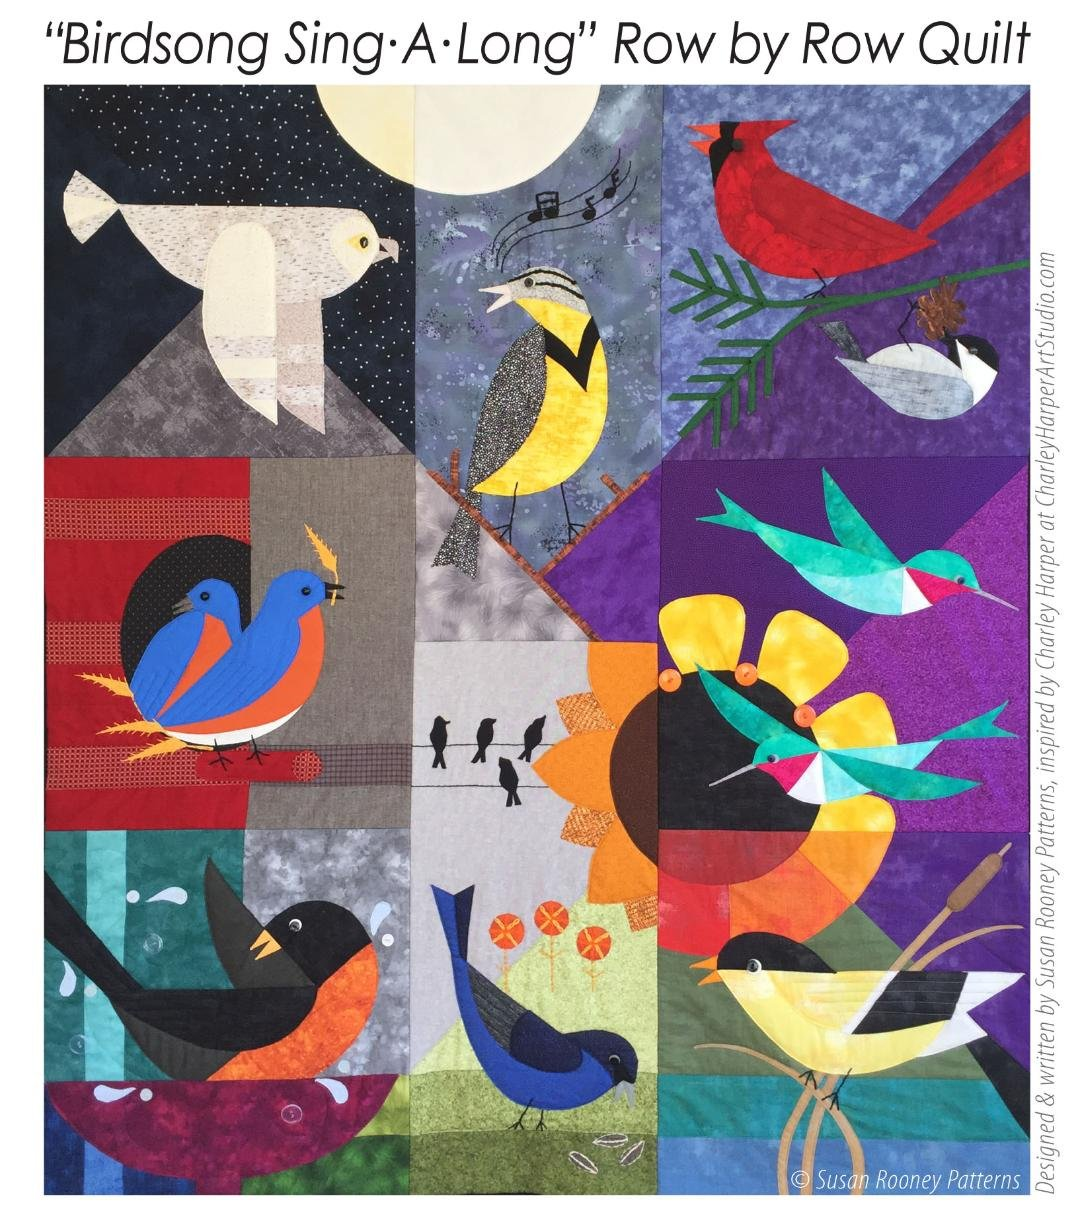 2018 Row by Row Quilt